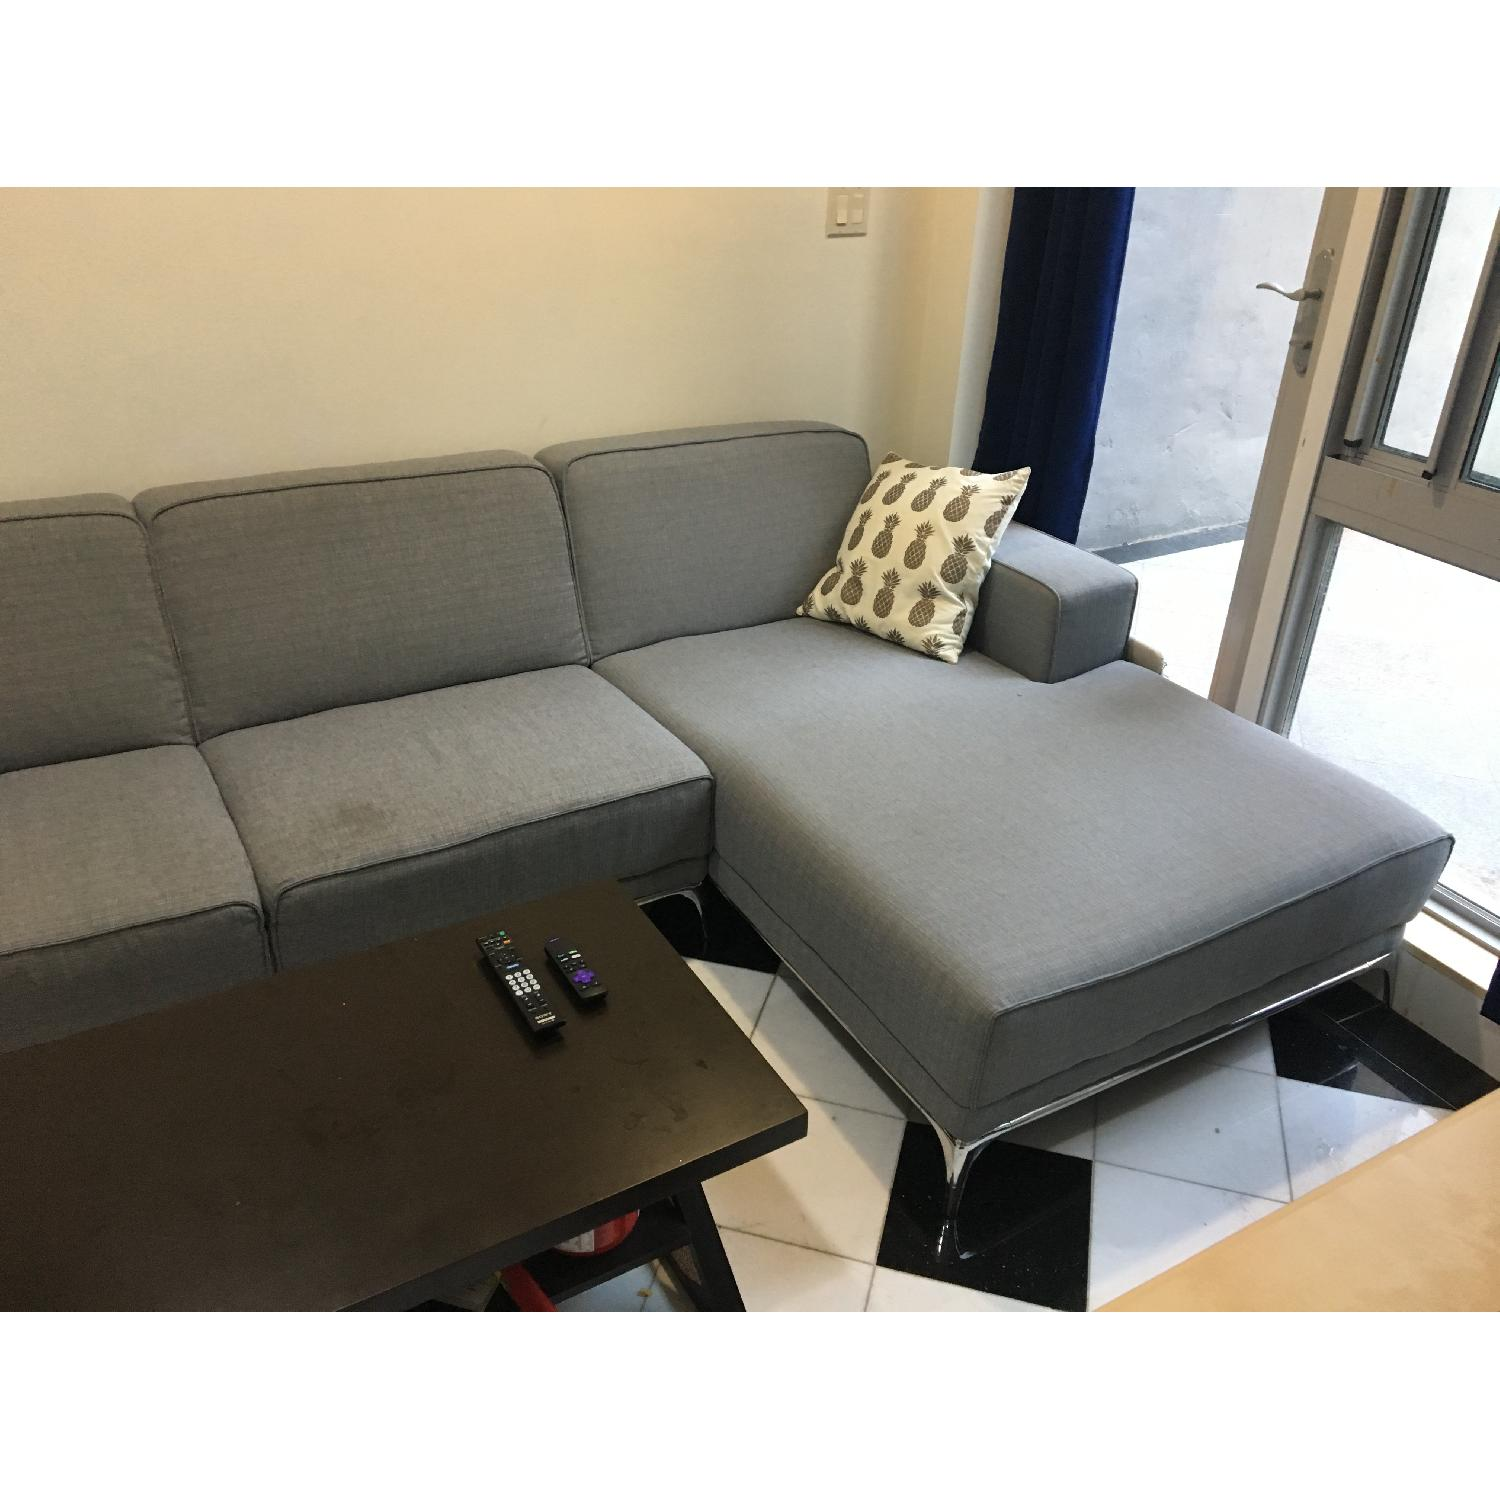 Modern Grey Couch w/ Chaise Lounge-0